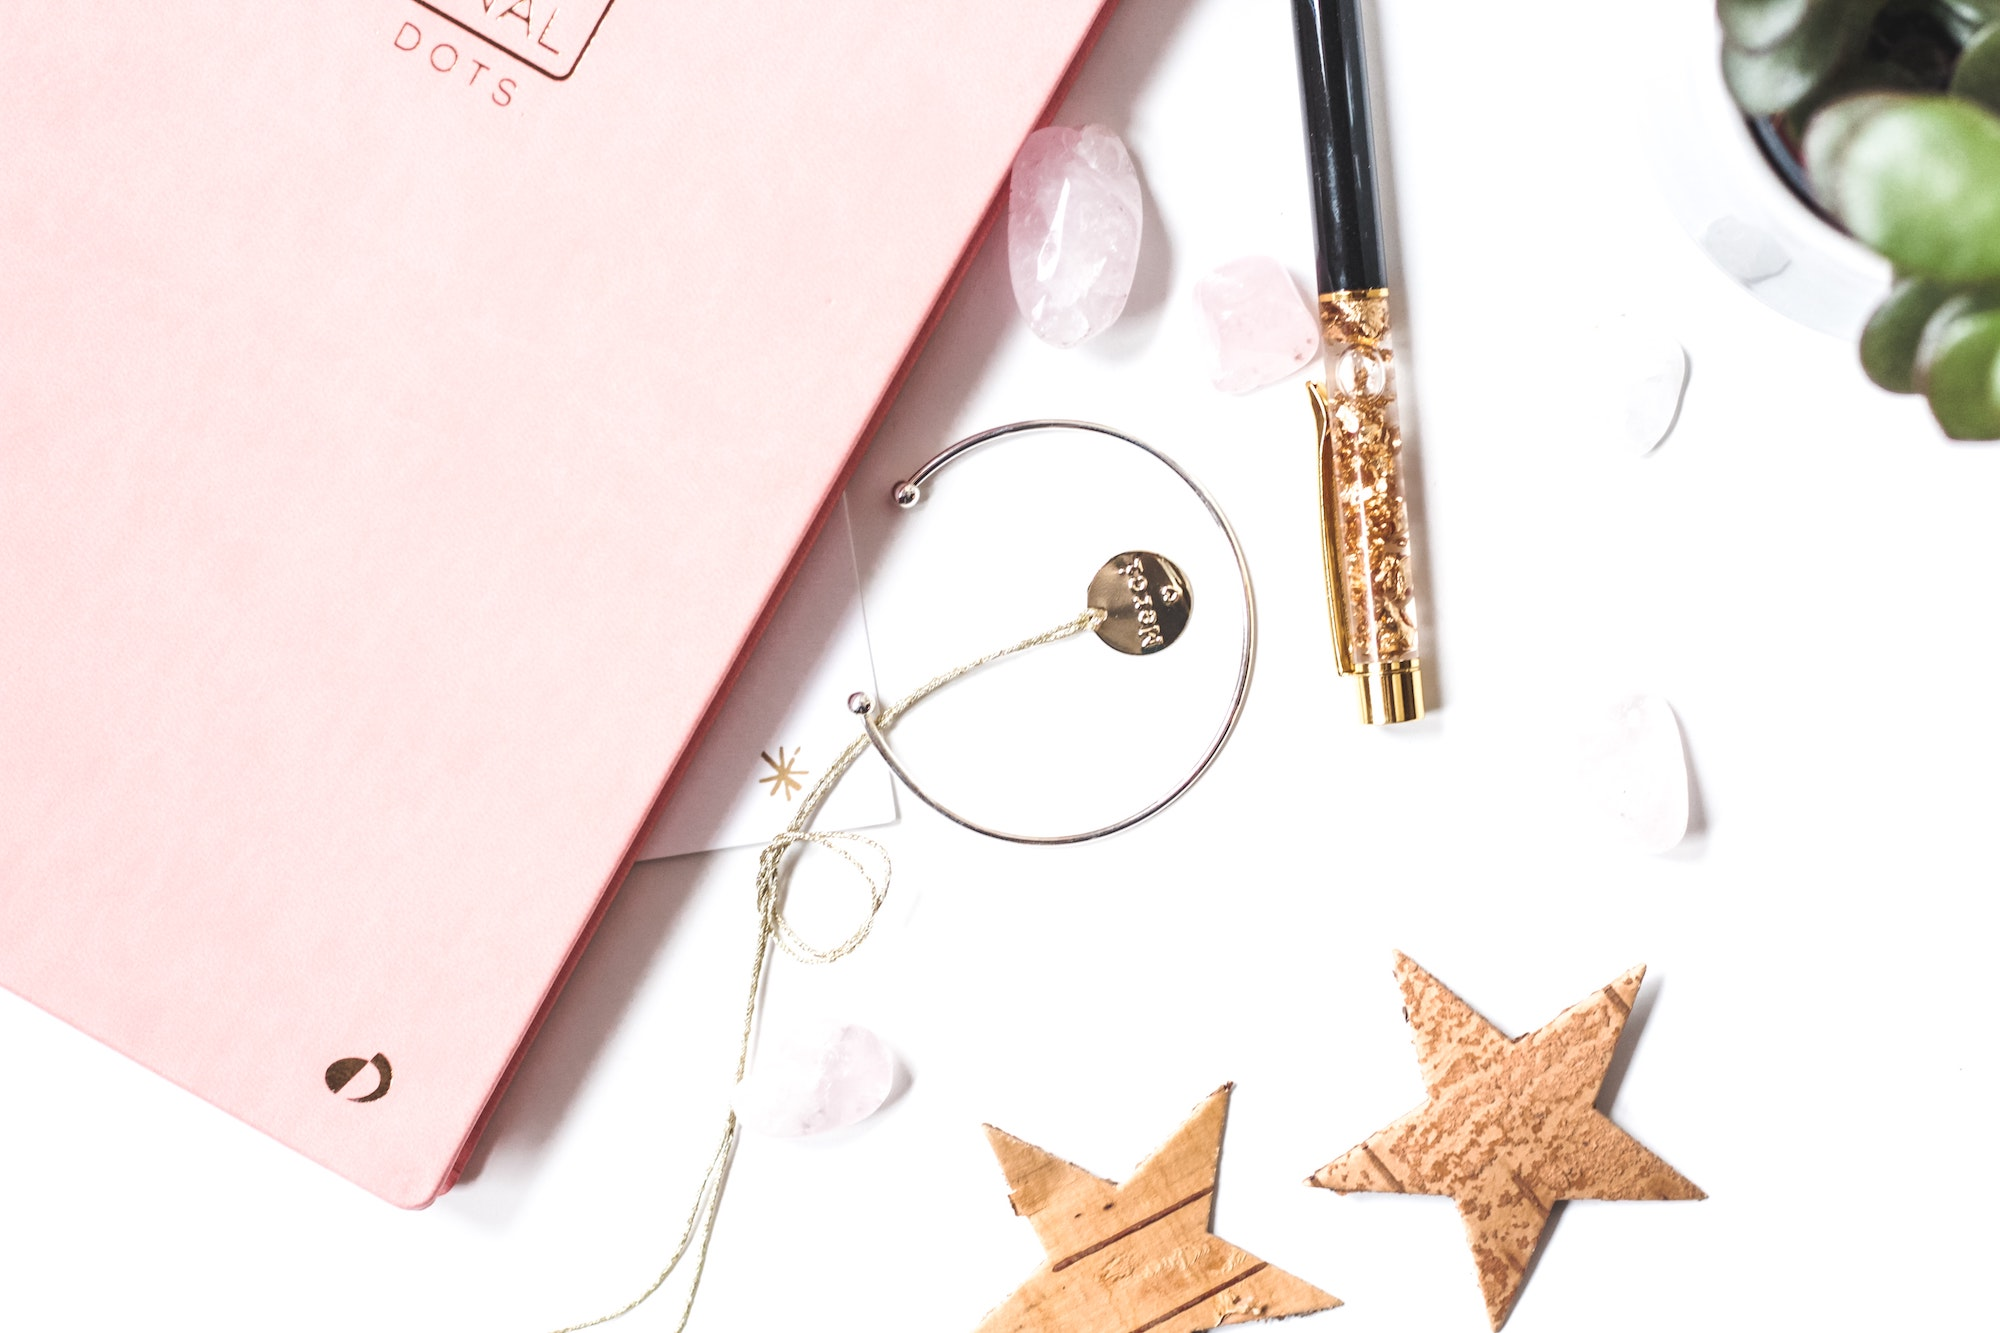 desk-layout-pink-notebook-pen-stars-how-to-pursue-your-dreams